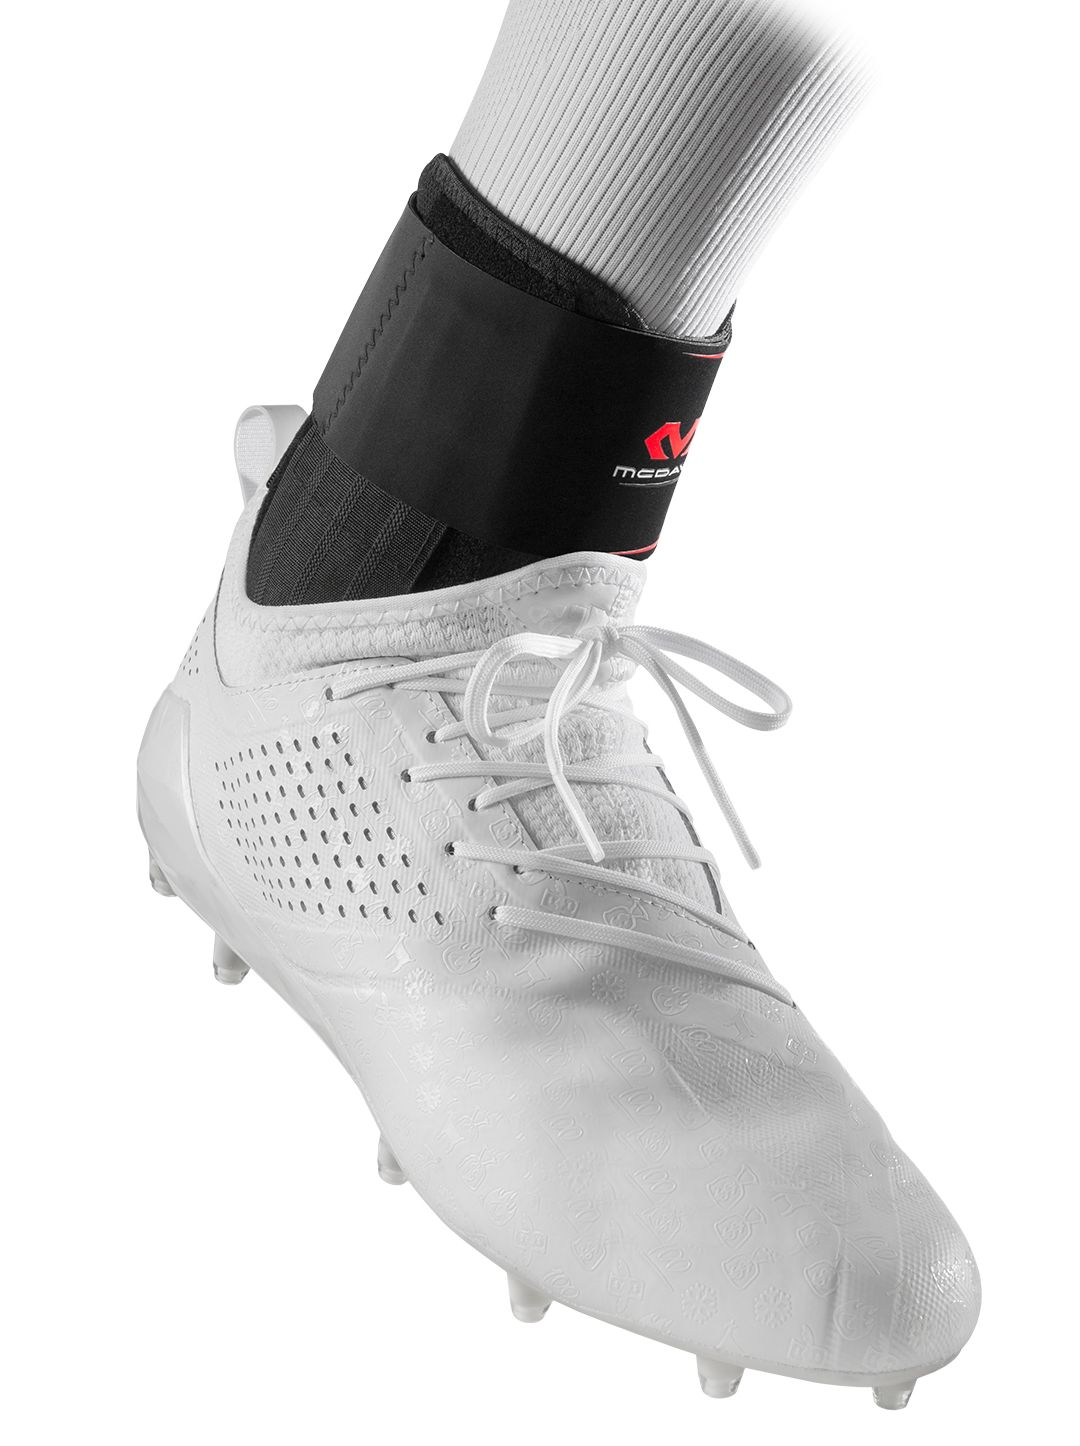 McDavid Stealth Ankle Brace with Stays Cleat